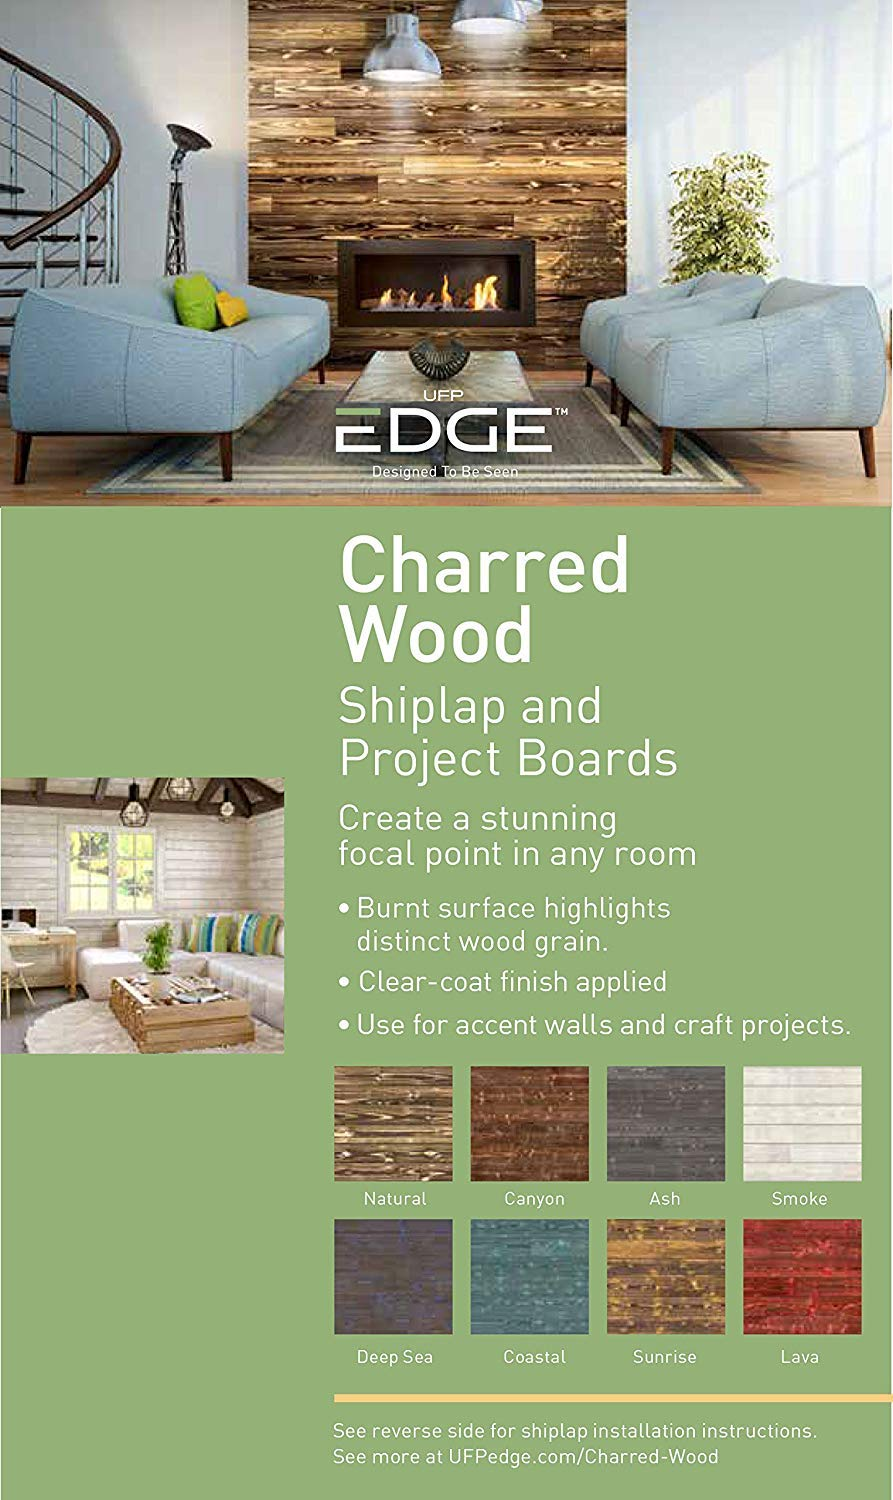 1 in x 6 in UFP-Edge Charred Wood Pine Project Board 3-Pack Factory Finished x 8 ft Interior DIY Decor